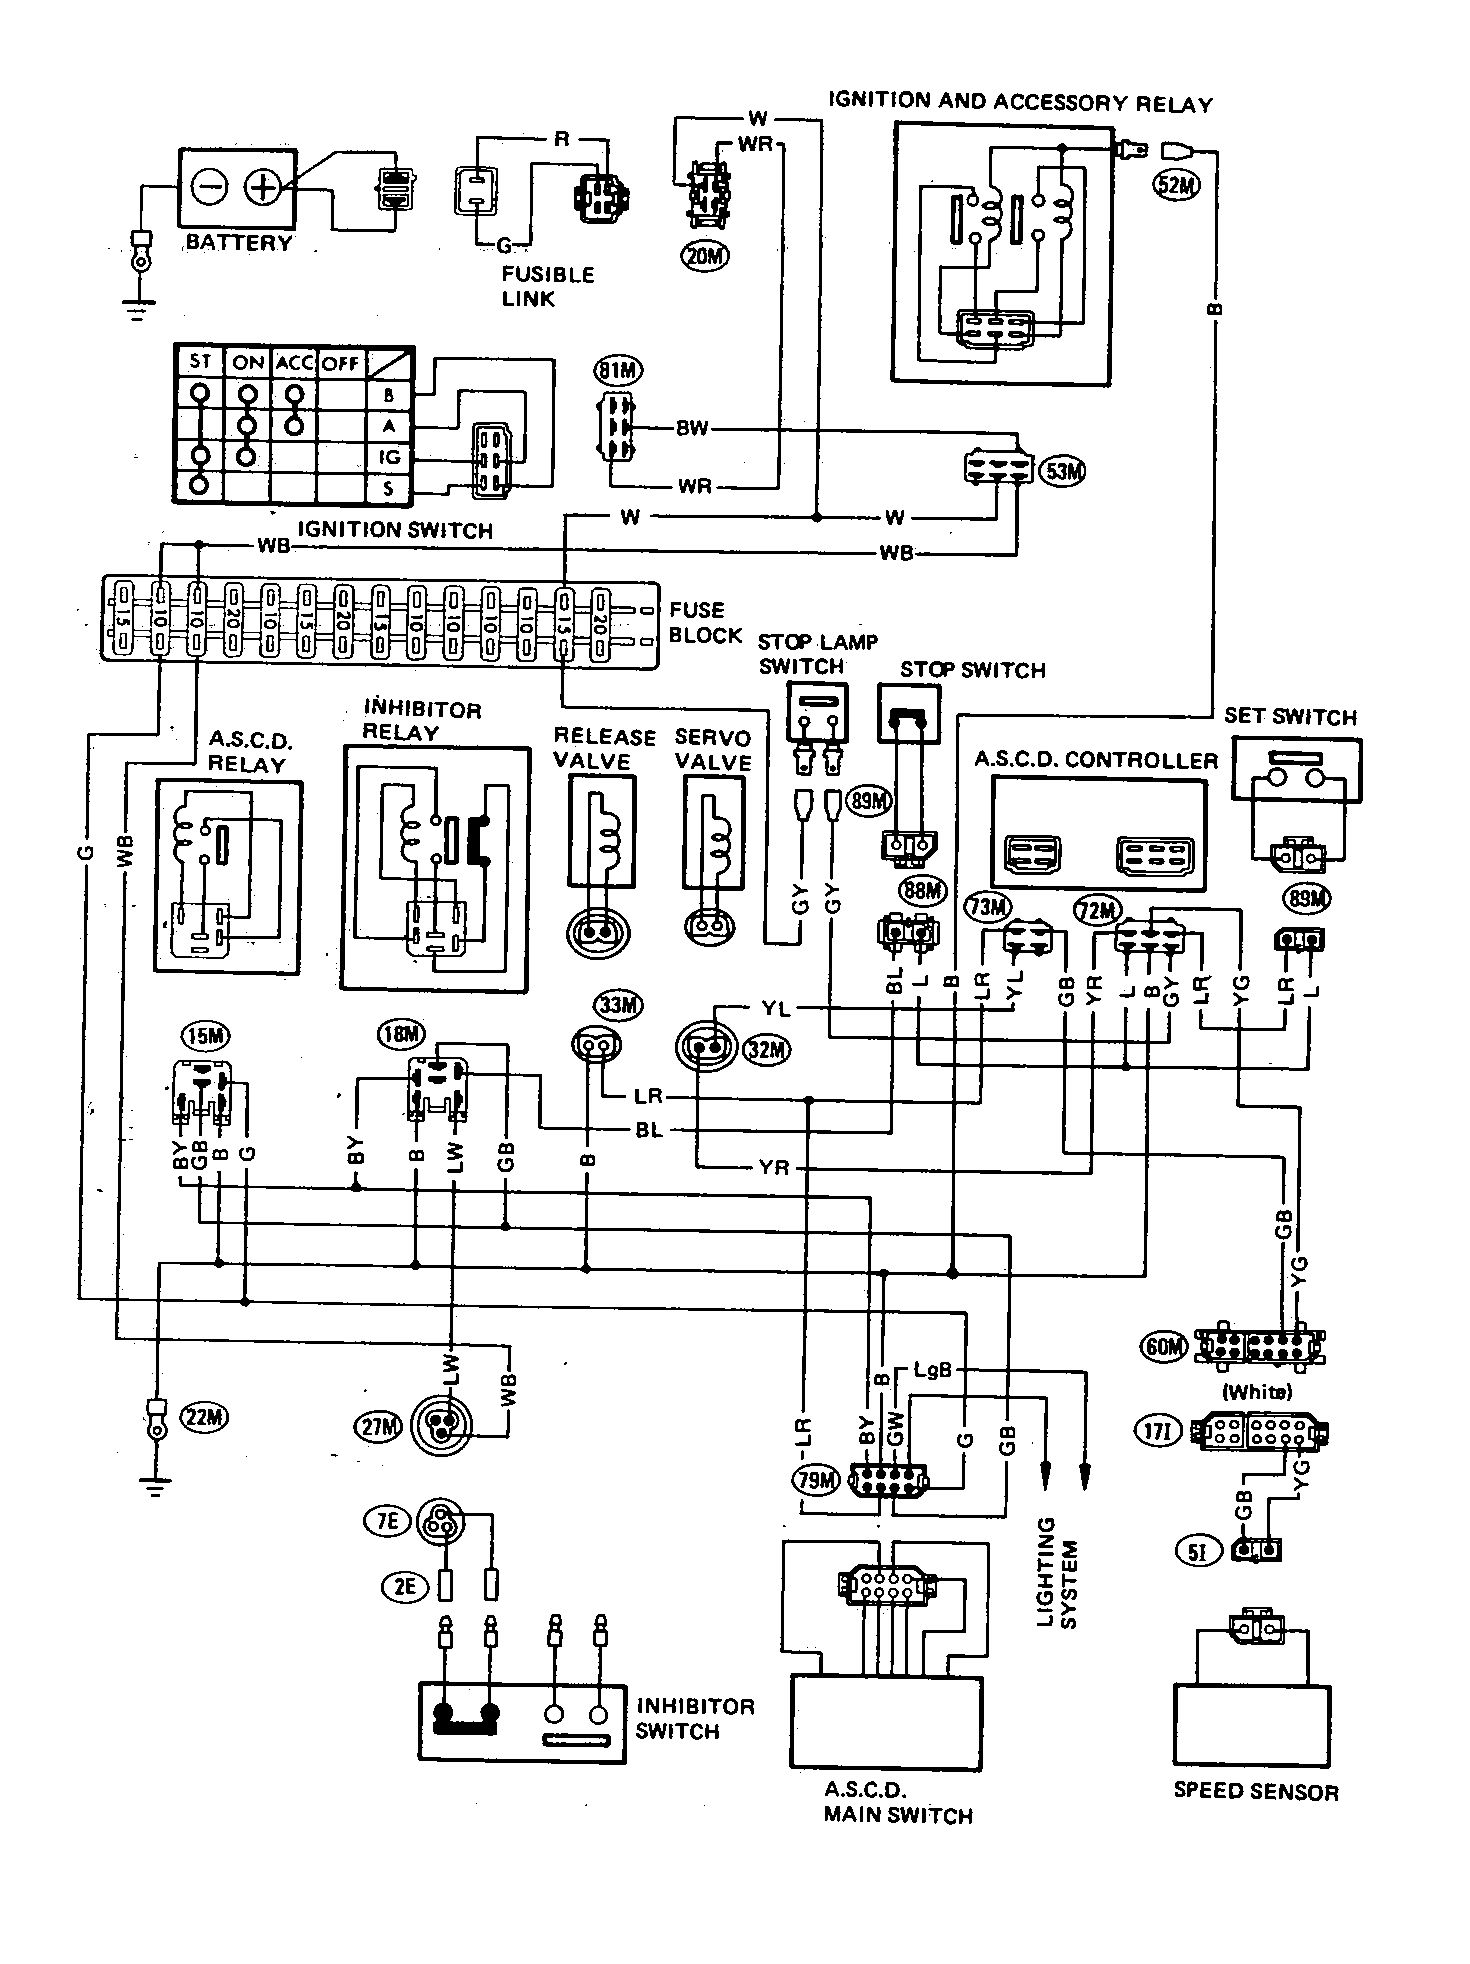 1995 Chevrolet Kodiak Wiring Diagrams 2008 Chevy C8500 Diagram C5500 Suzuki Vinson 2003 Yamaha